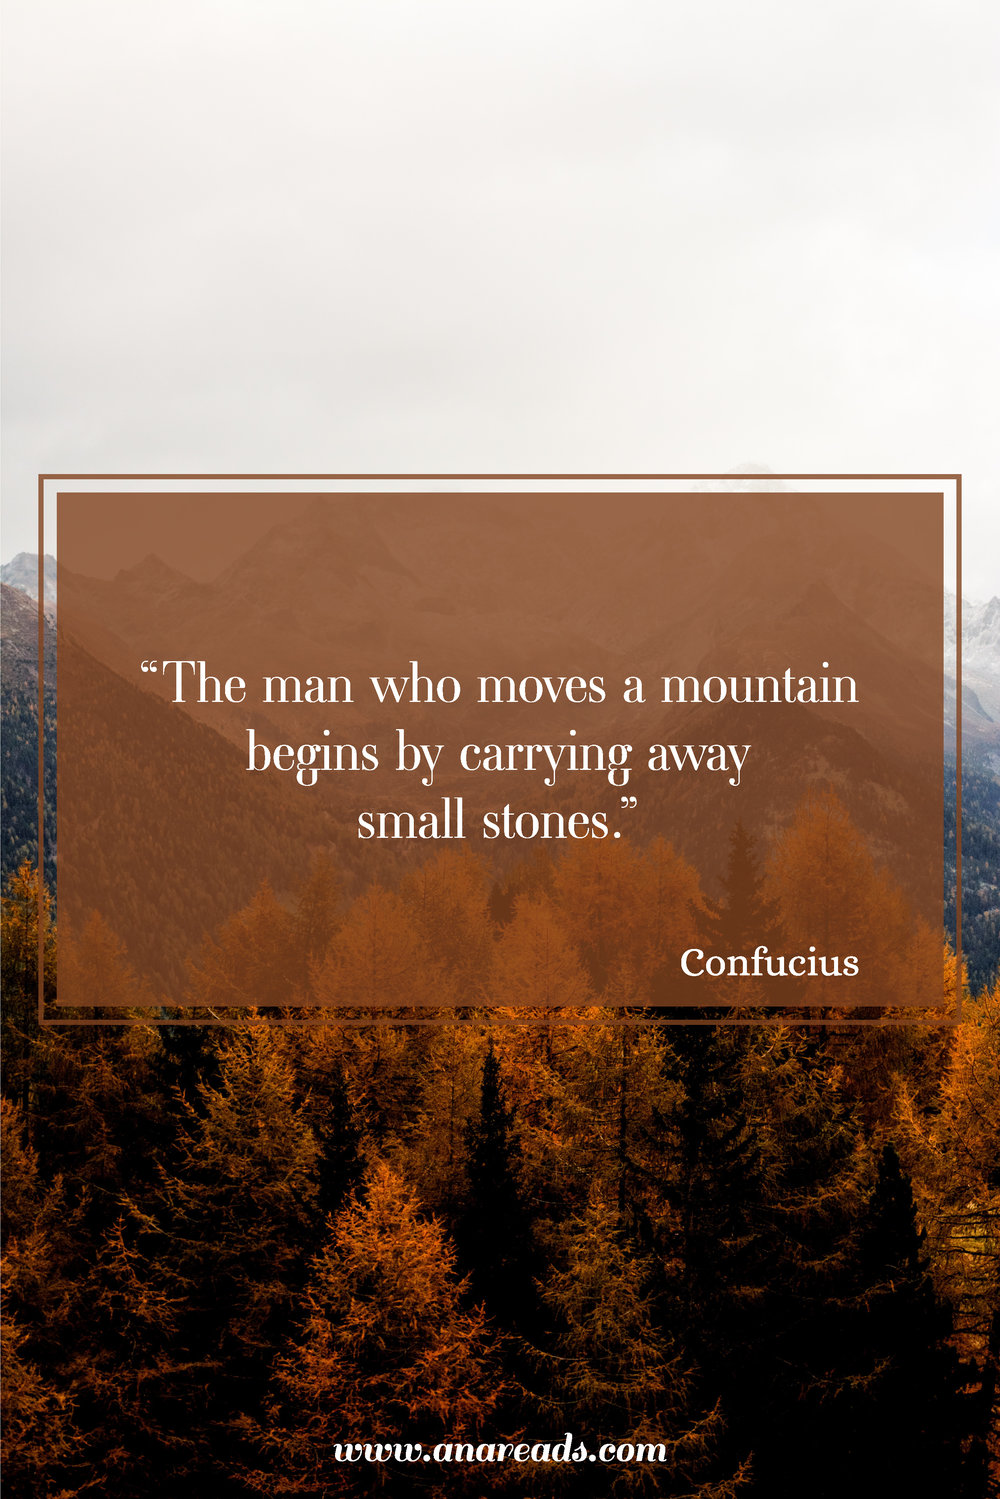 the man who moves a mountain begins by carrying away small stones - confucius quote